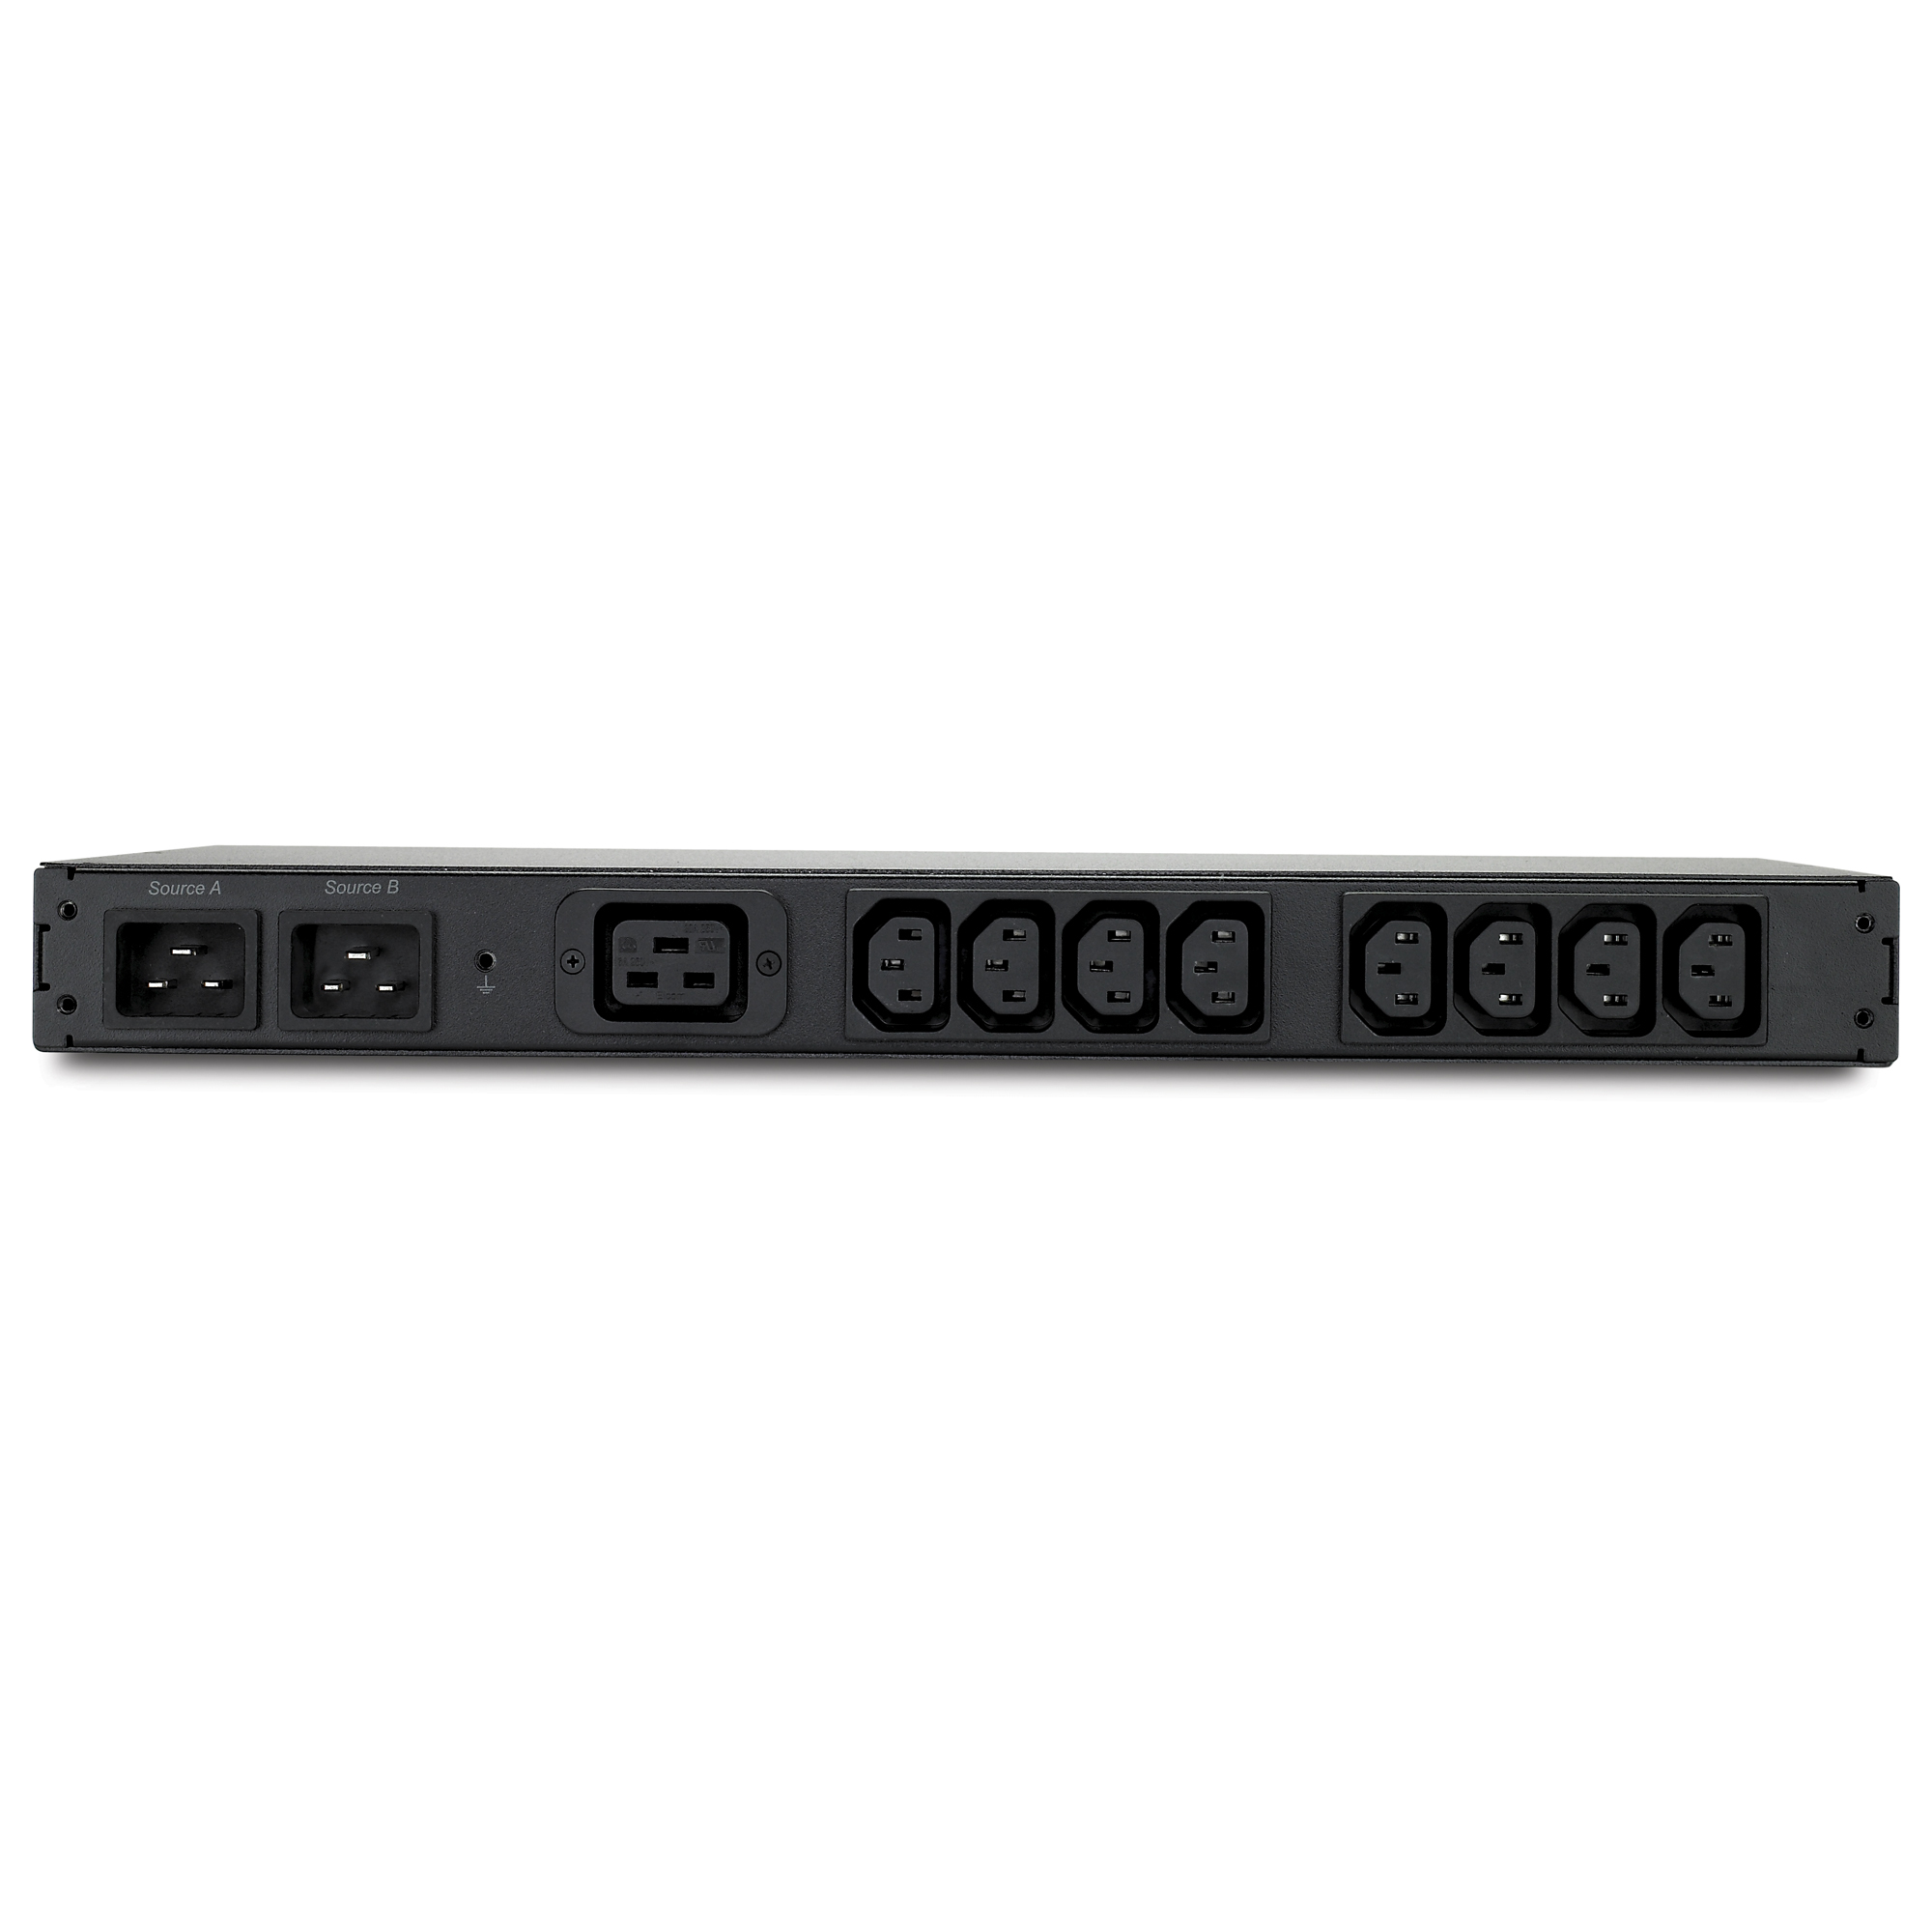 Apc - Racks And Pdus             Rack Ats 230v 16a                   C20 In (8) C13 (1) C19 Out          Ap4423